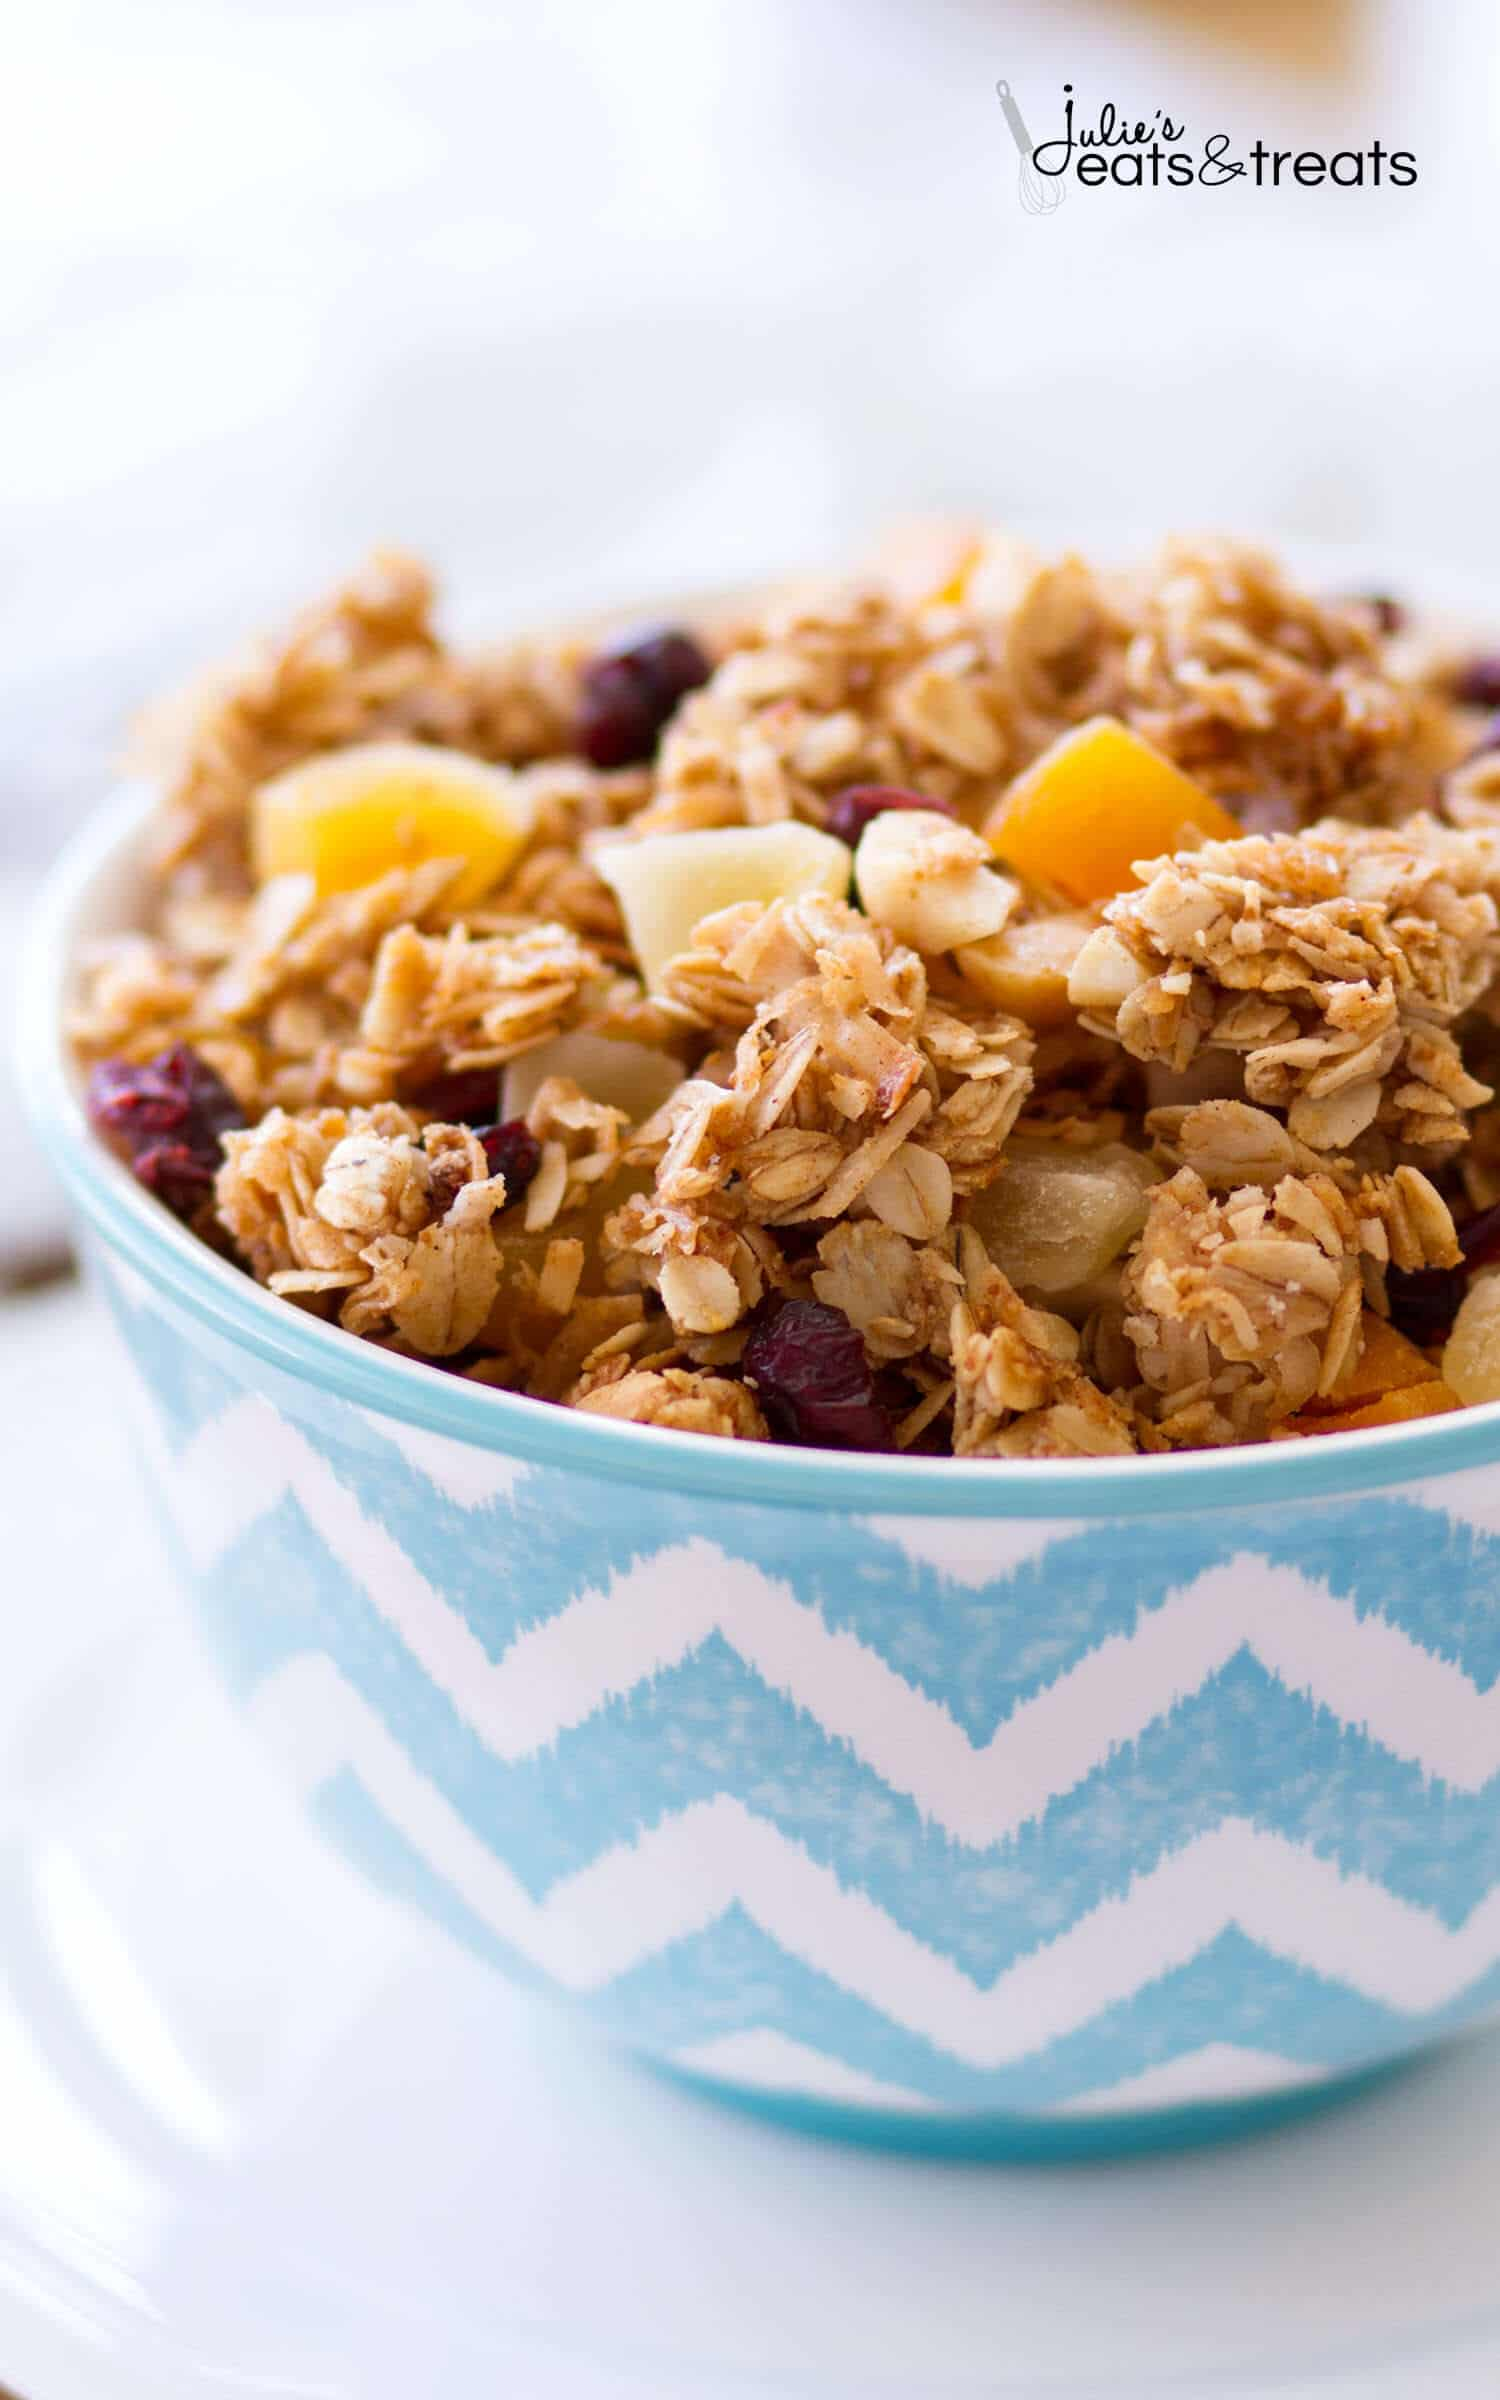 This homemade Tropical Coconut Granola is filled with shredded coconut, coconut oil, and coconut sugar! Dried pineapple, apricots, golden raisins, cranberries, and macadamia nuts give this easy coconut granola a tropical flavor. This homemade granola recipe is so easy, you may never buy store-bought again!